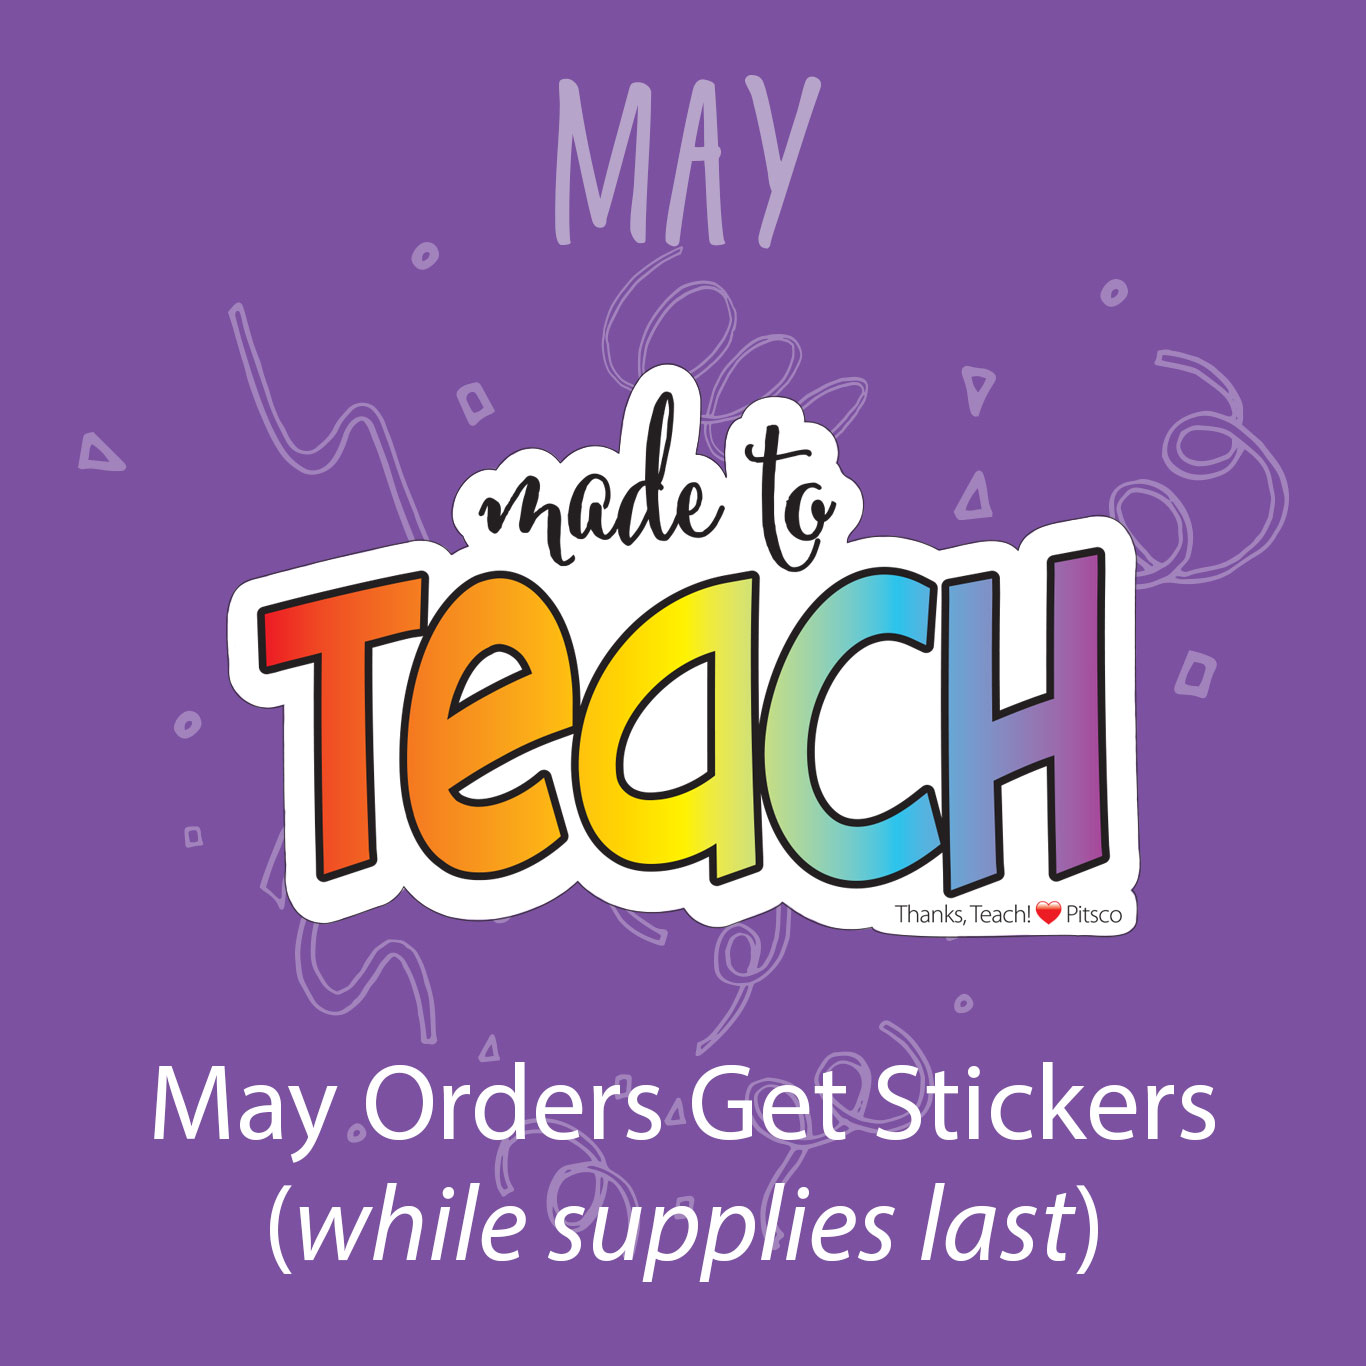 May Orders Get Stickers